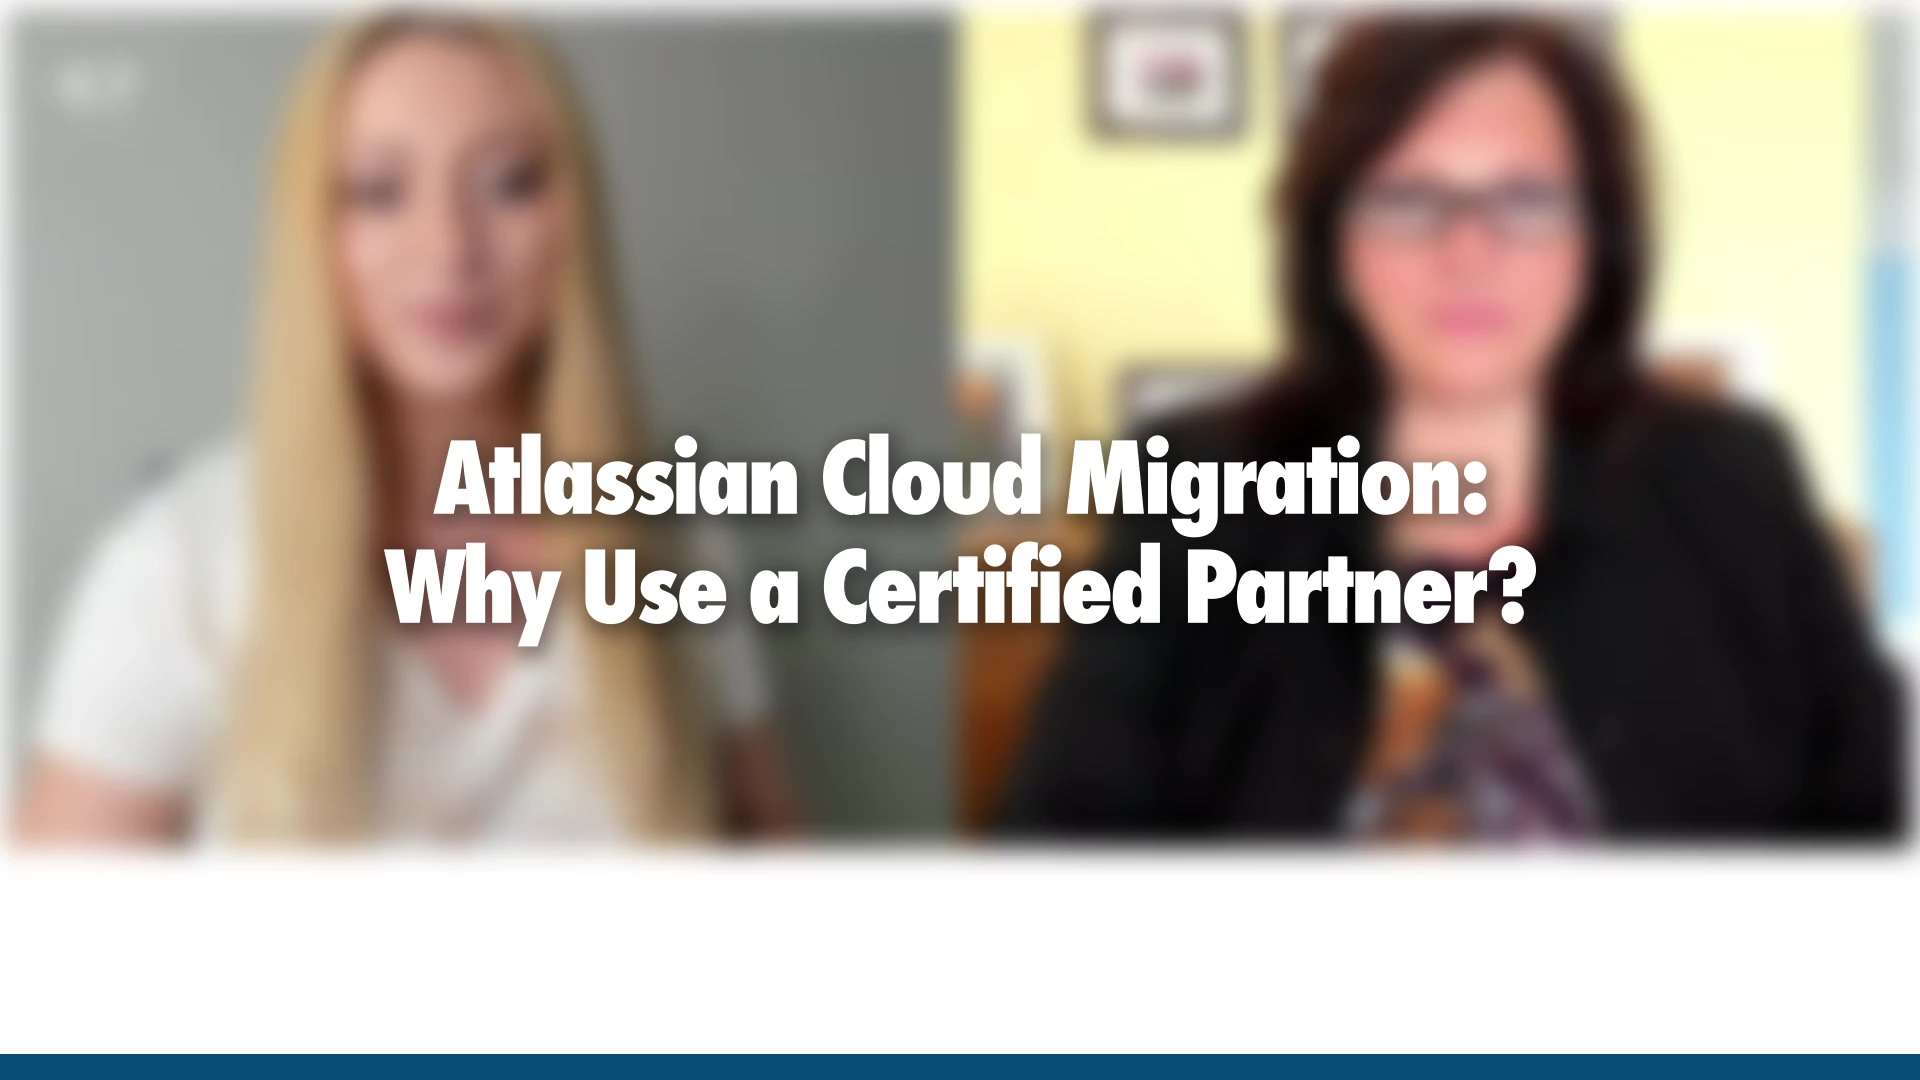 Atlassian Cloud Migration - Why use a Partner (2)